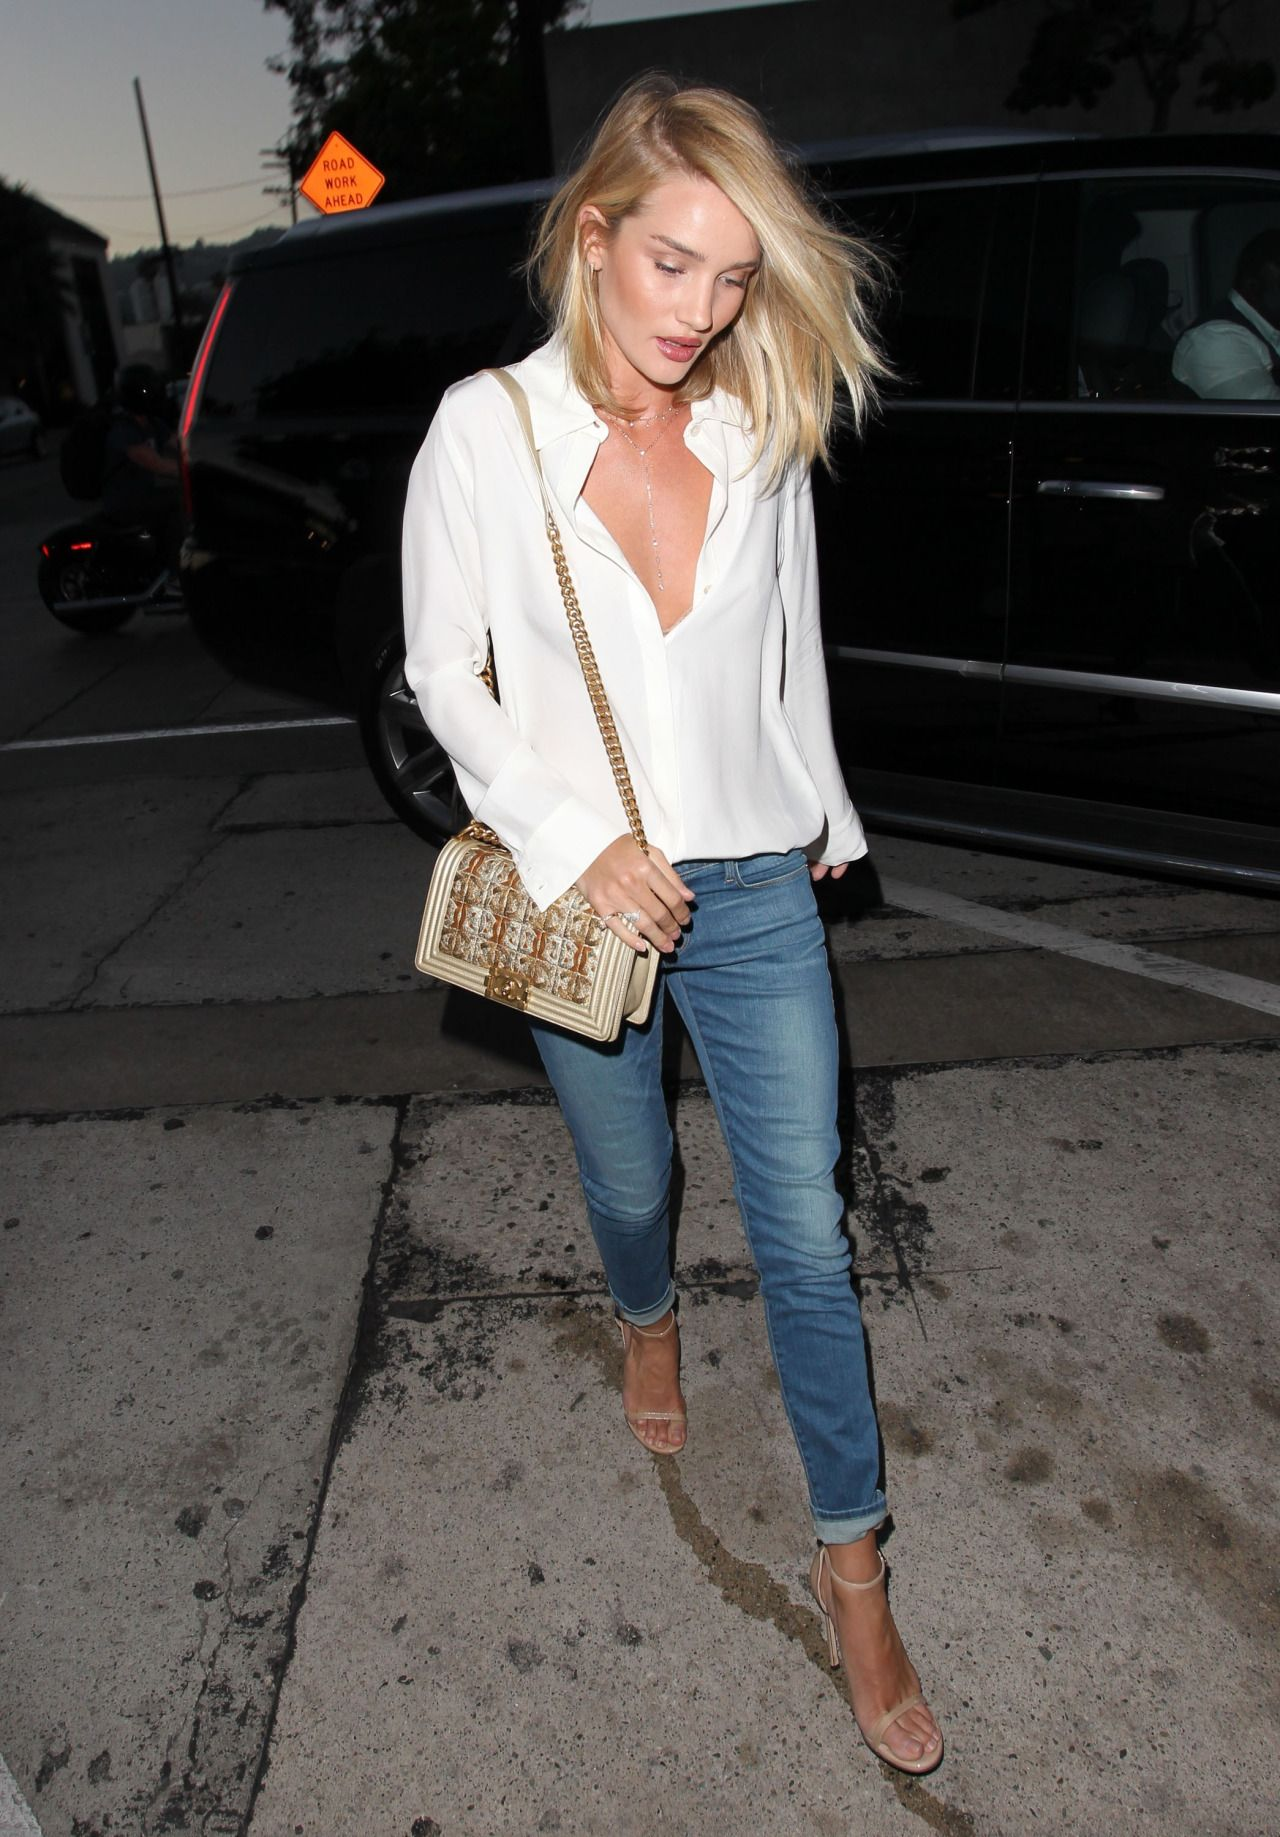 Rosie Huntington-Whiteleys 3 Foolproof Date Night Looks